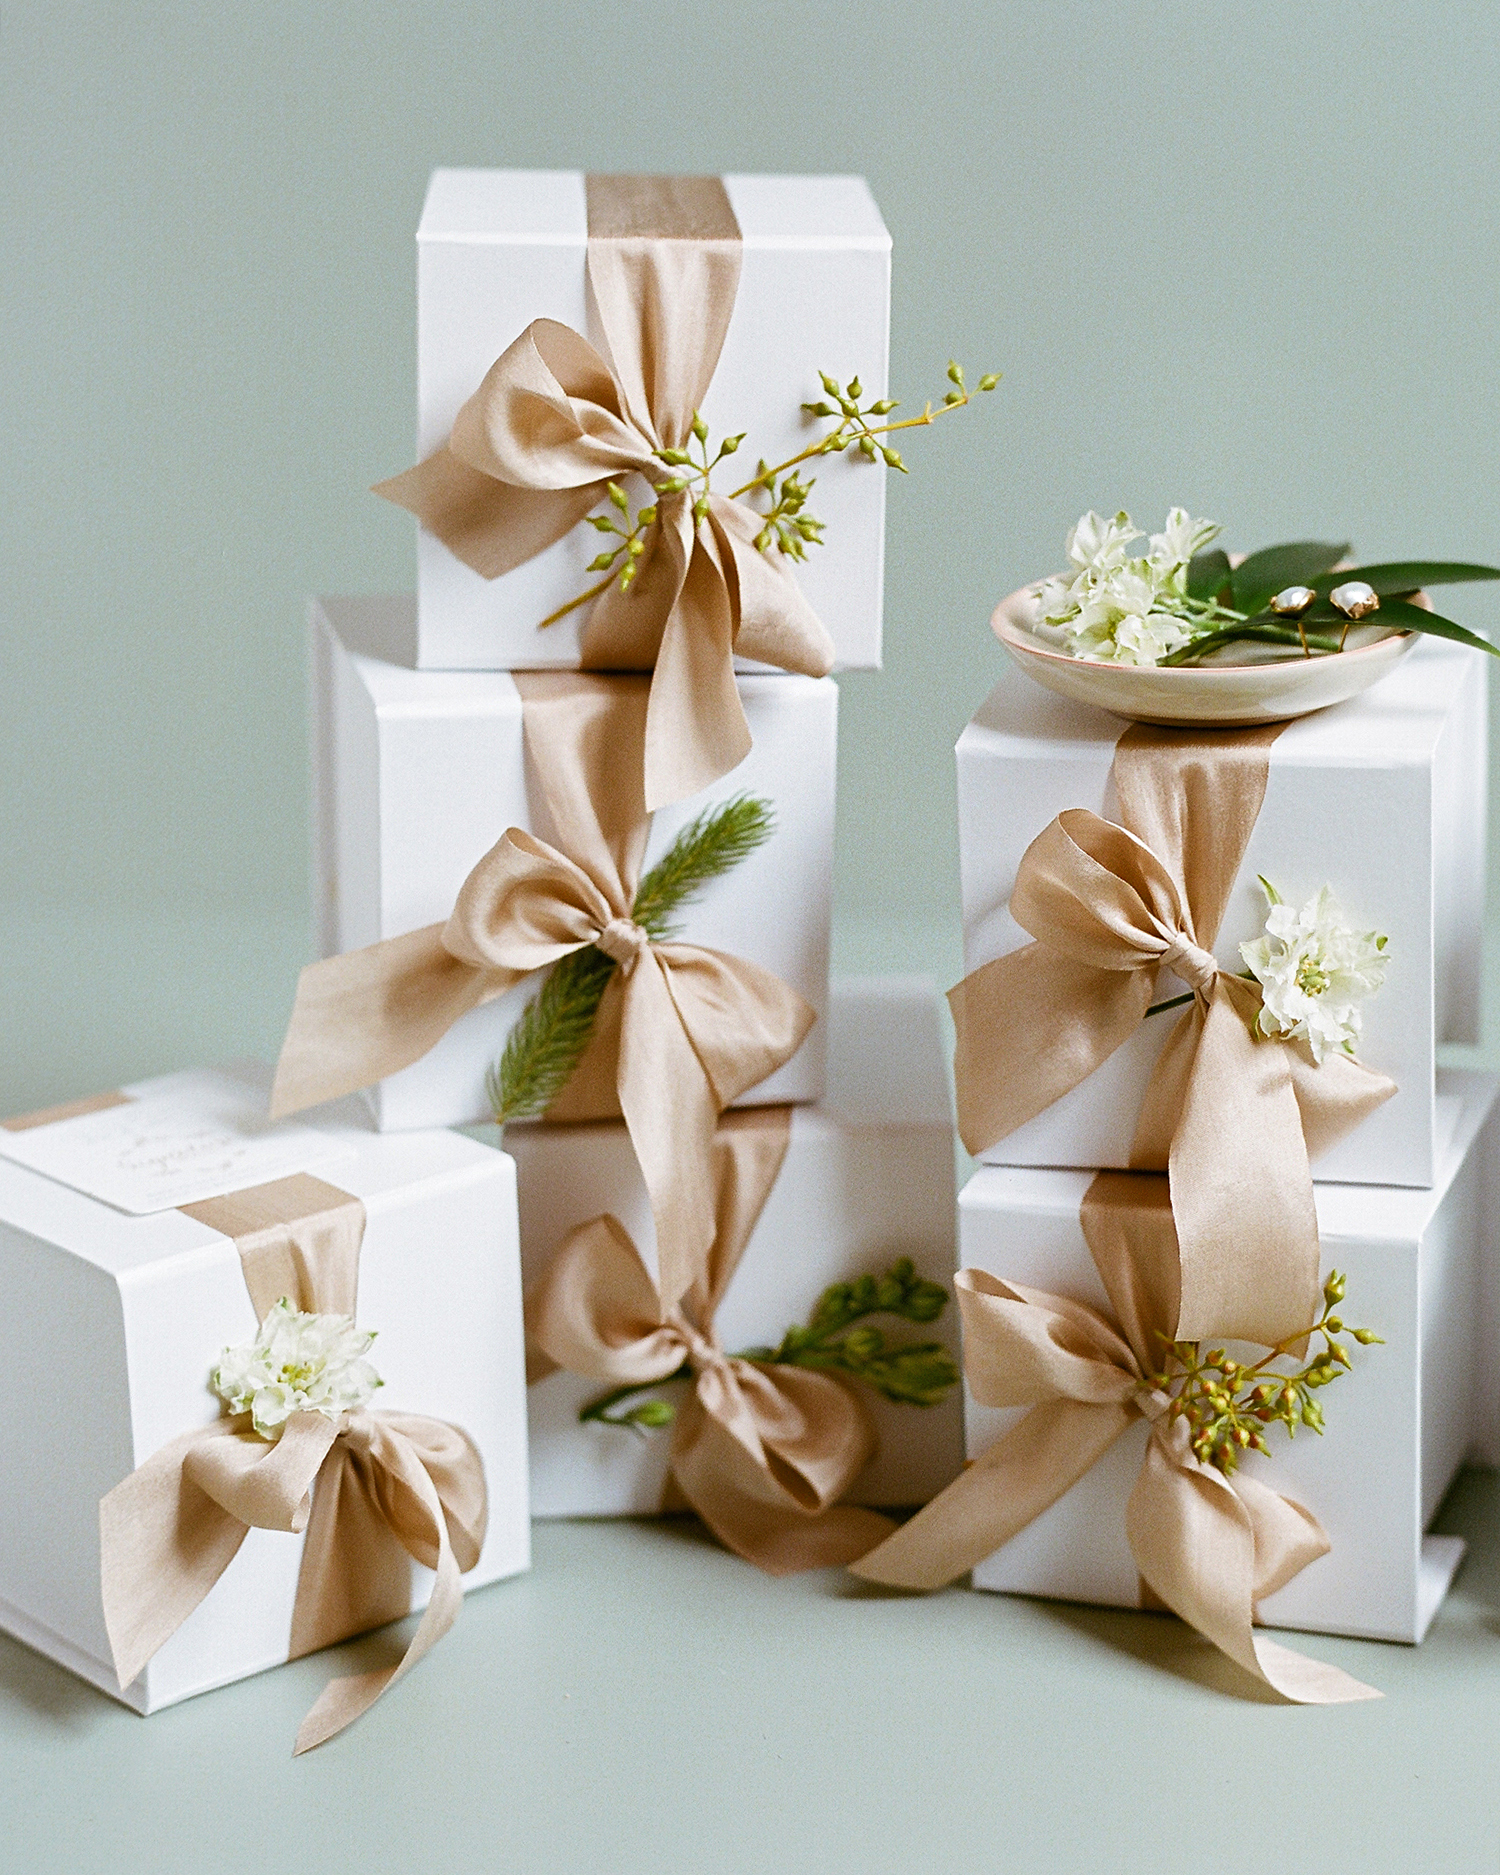 Wedding Website Url Ideas: 34 Festive Fall Wedding Favor Ideas